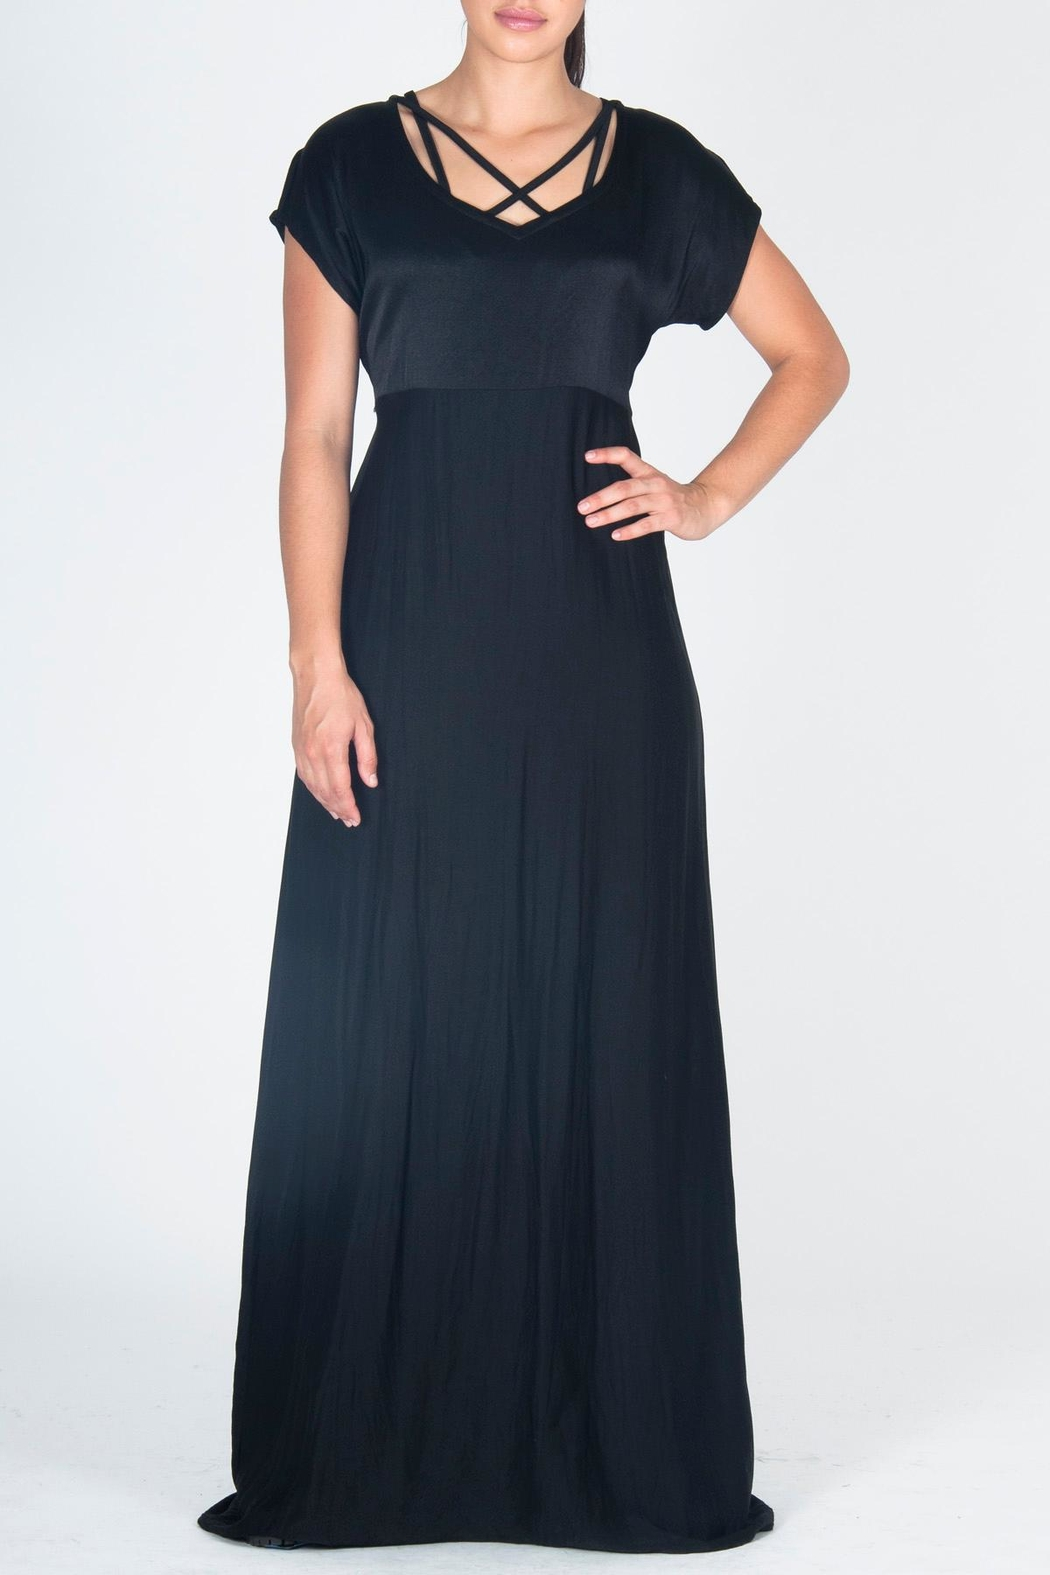 JUNA Maxi Cathedral Dress - Main Image